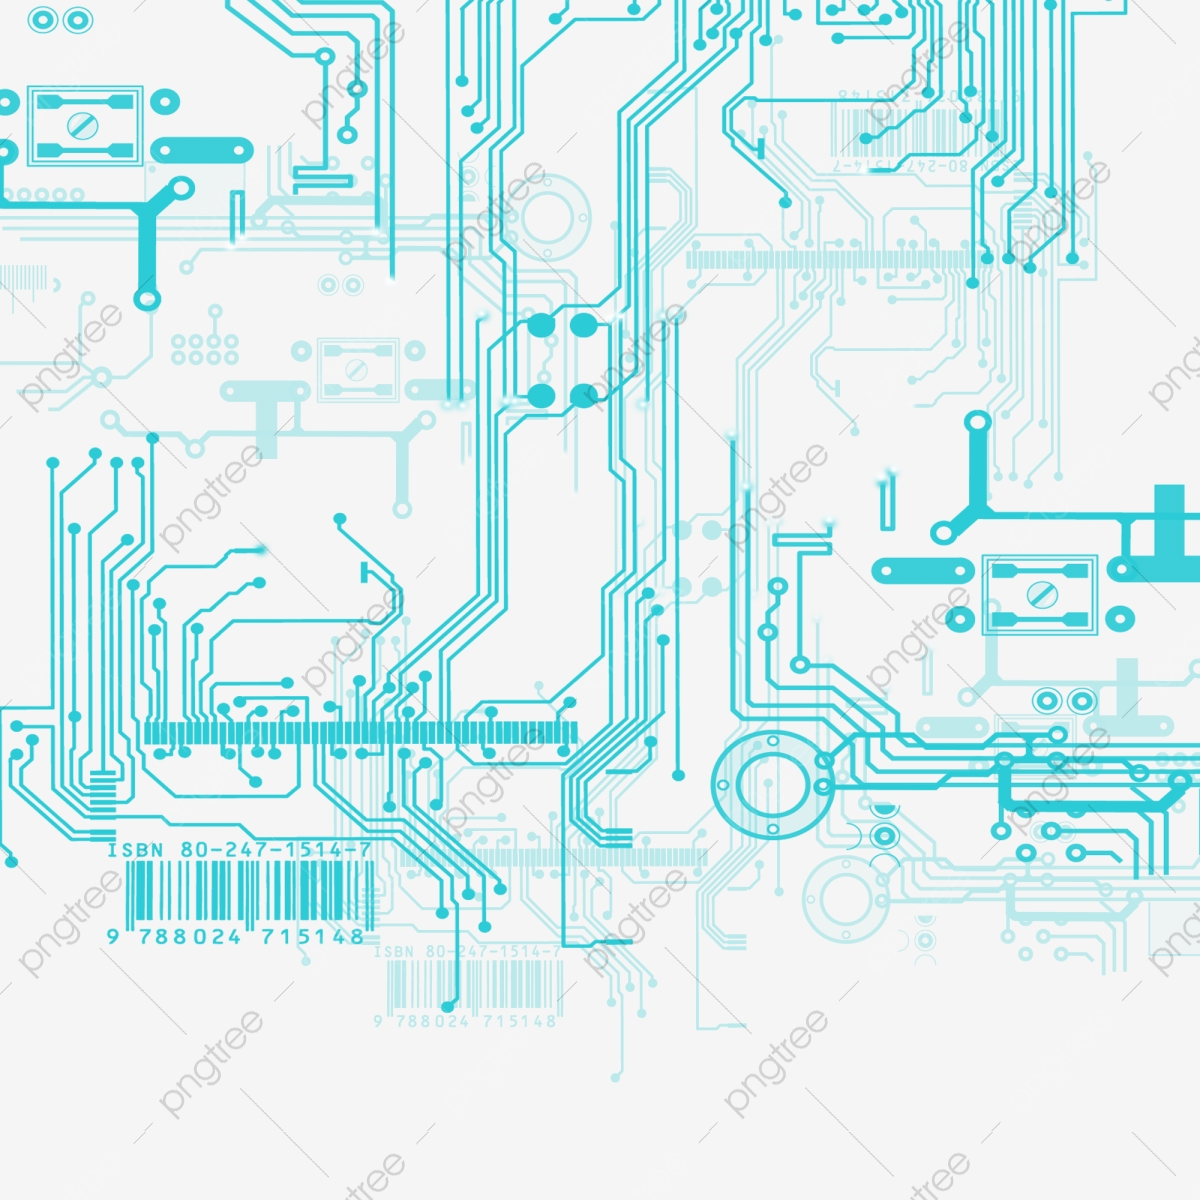 hight resolution of commercial use resource upgrade to premium plan and get license authorization upgradenow technological sense line computer circuit